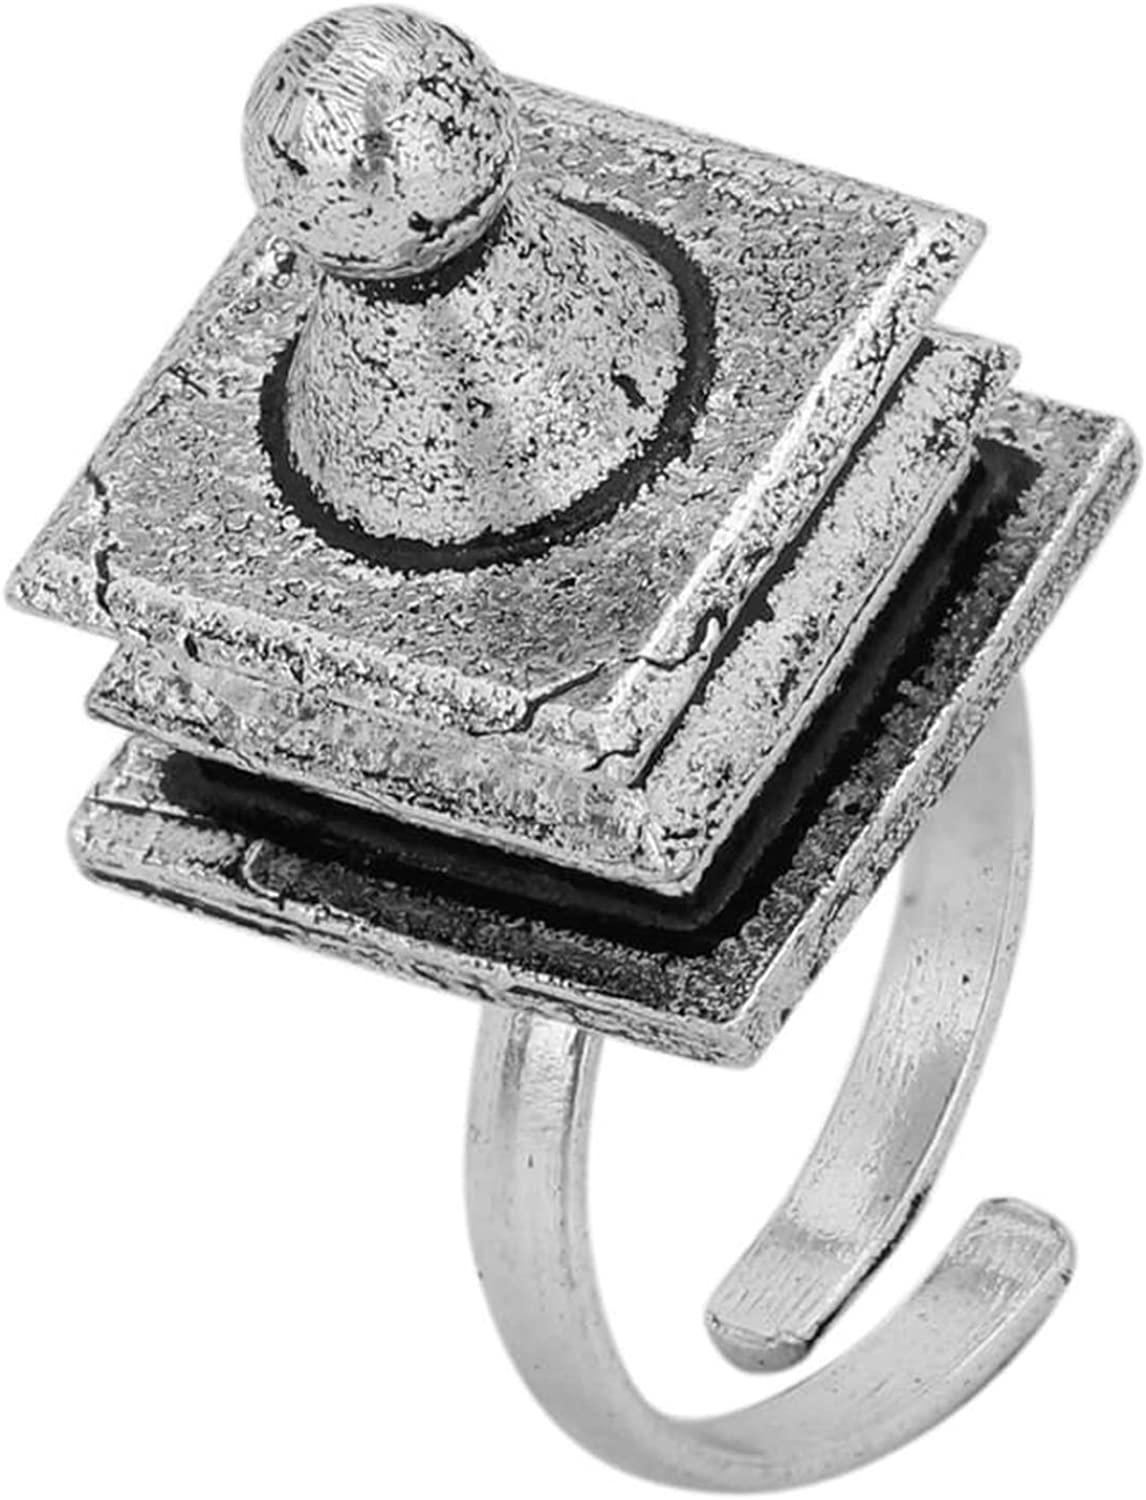 Tjori Tribal//African Oxidized Silver Plated Brass Ring Temple Design Adjustable for Women and Girls JR-105